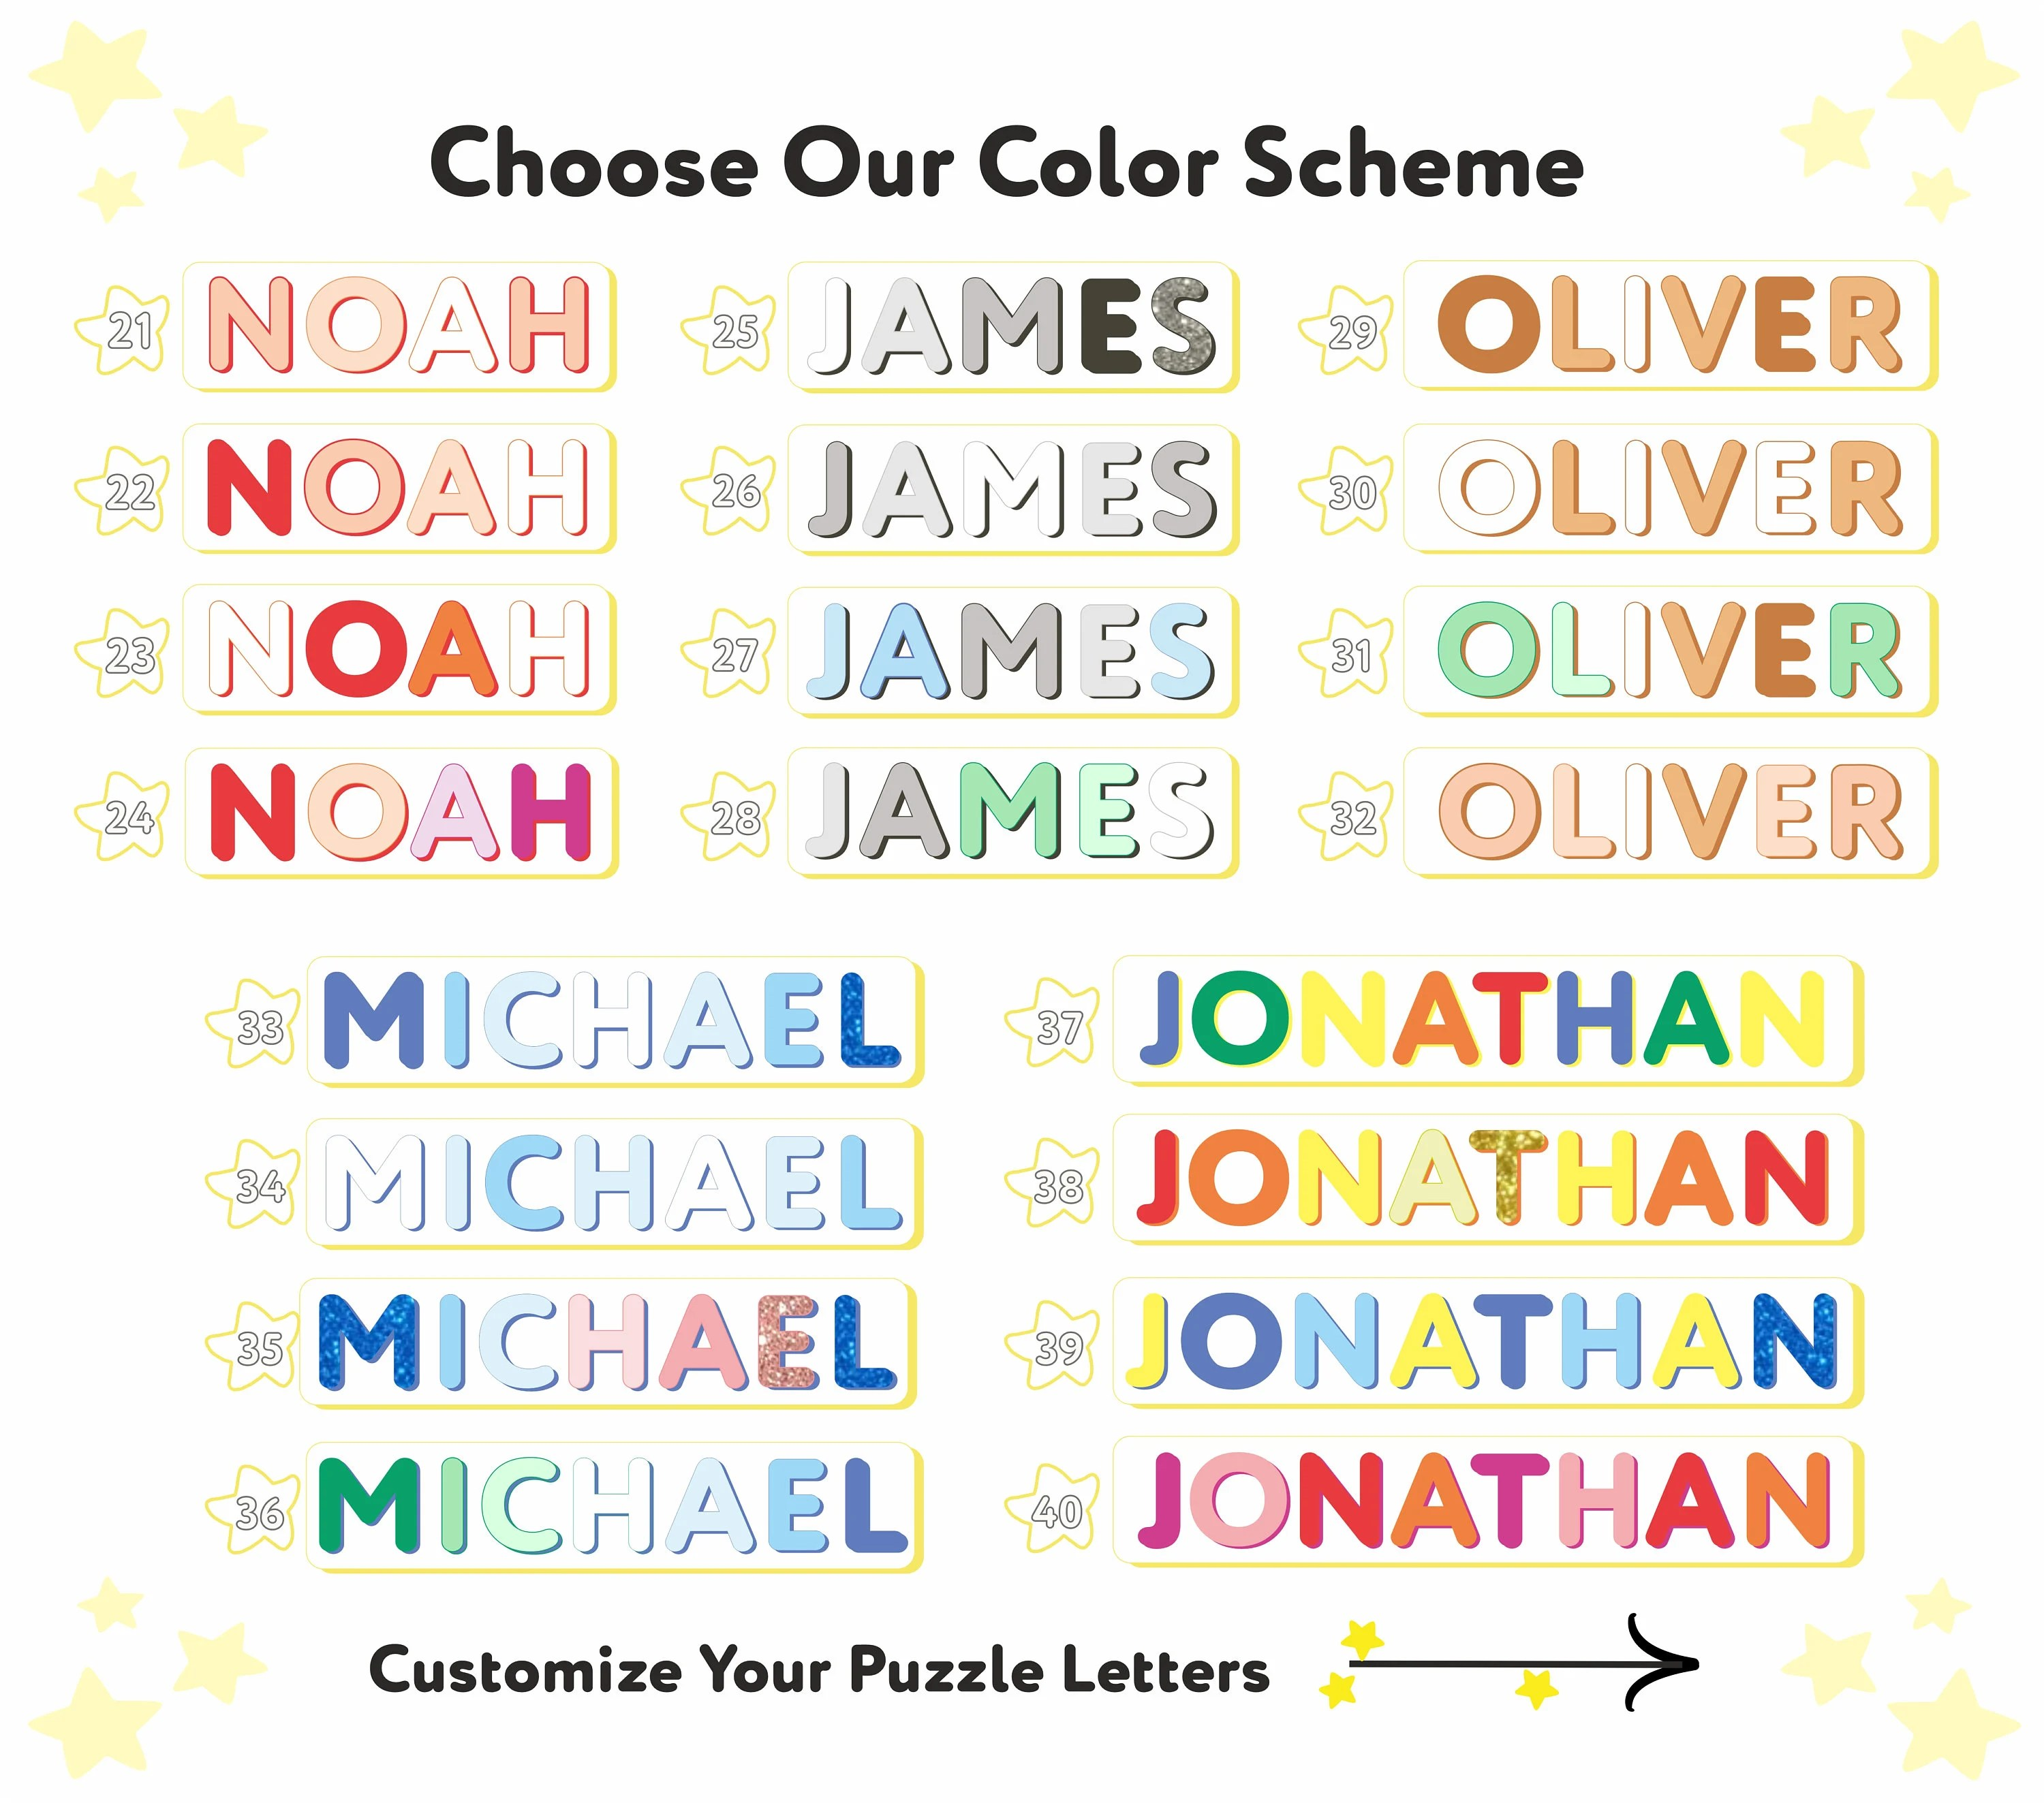 JACOB  Personalized Name Puzzle With Pegs  Montessori Toys image 4